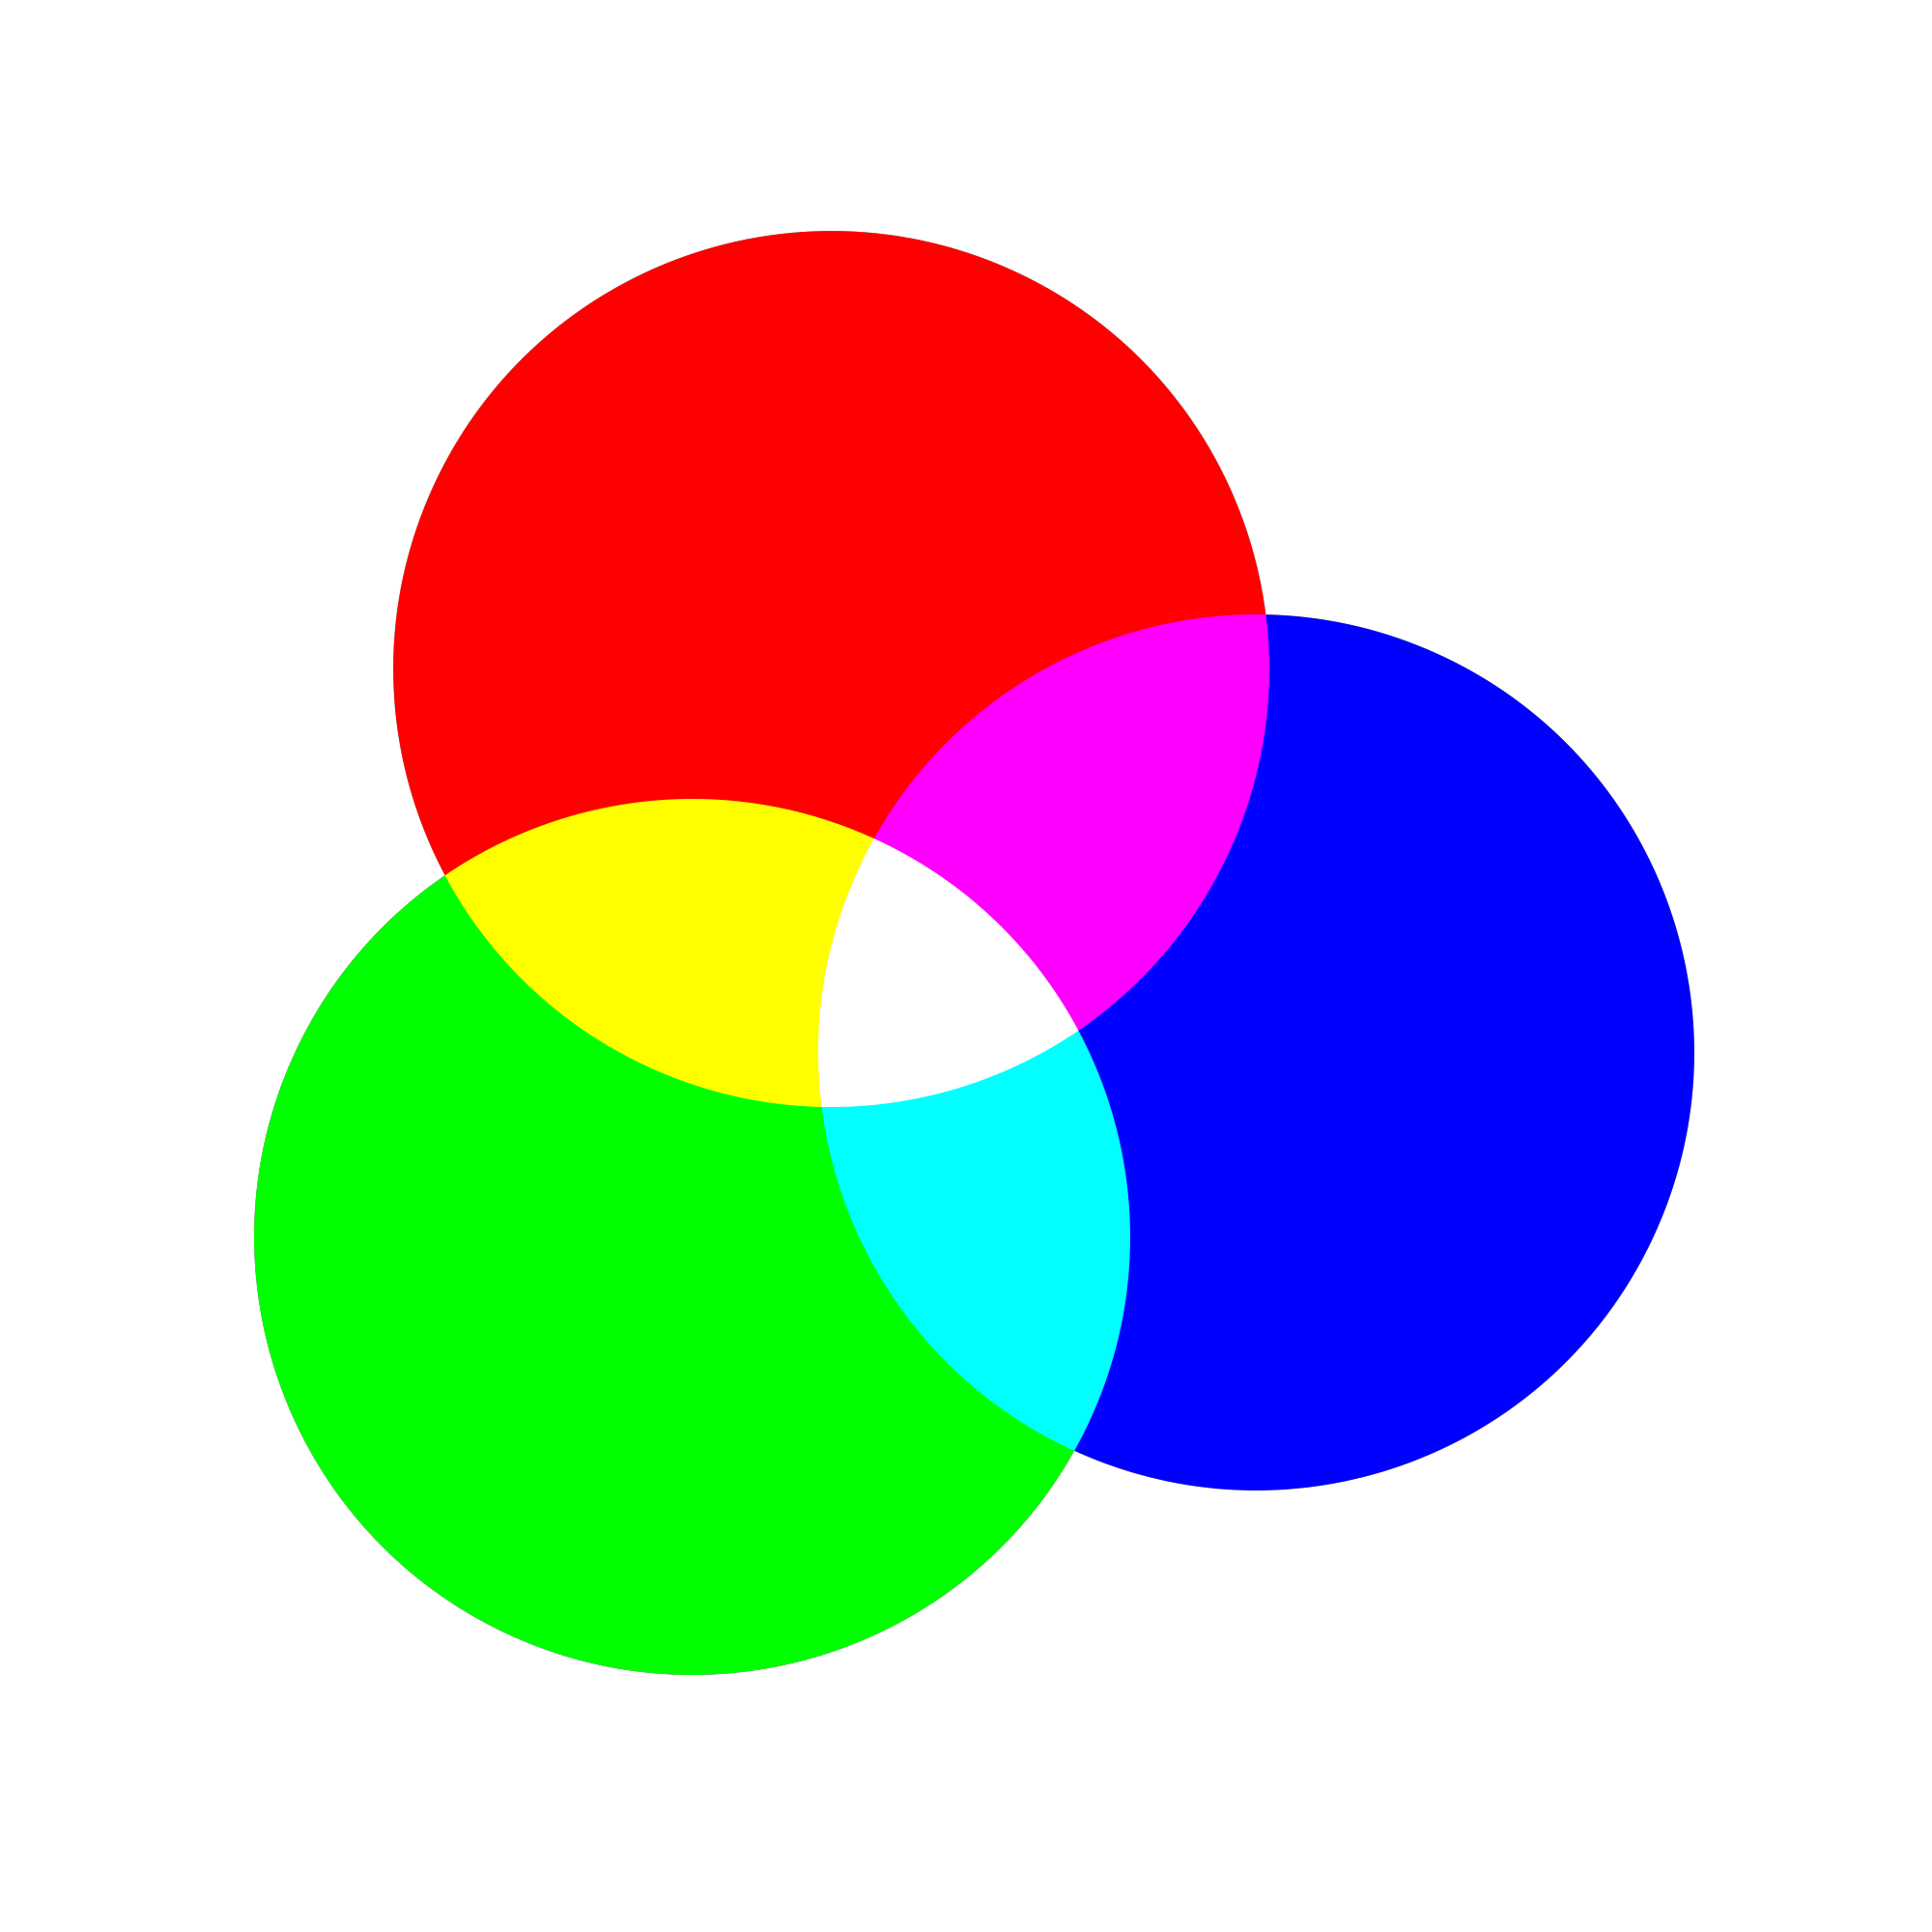 The Difference Between Rgb And Cmyk Natsumi Nishizumi Simple Branding Website Design